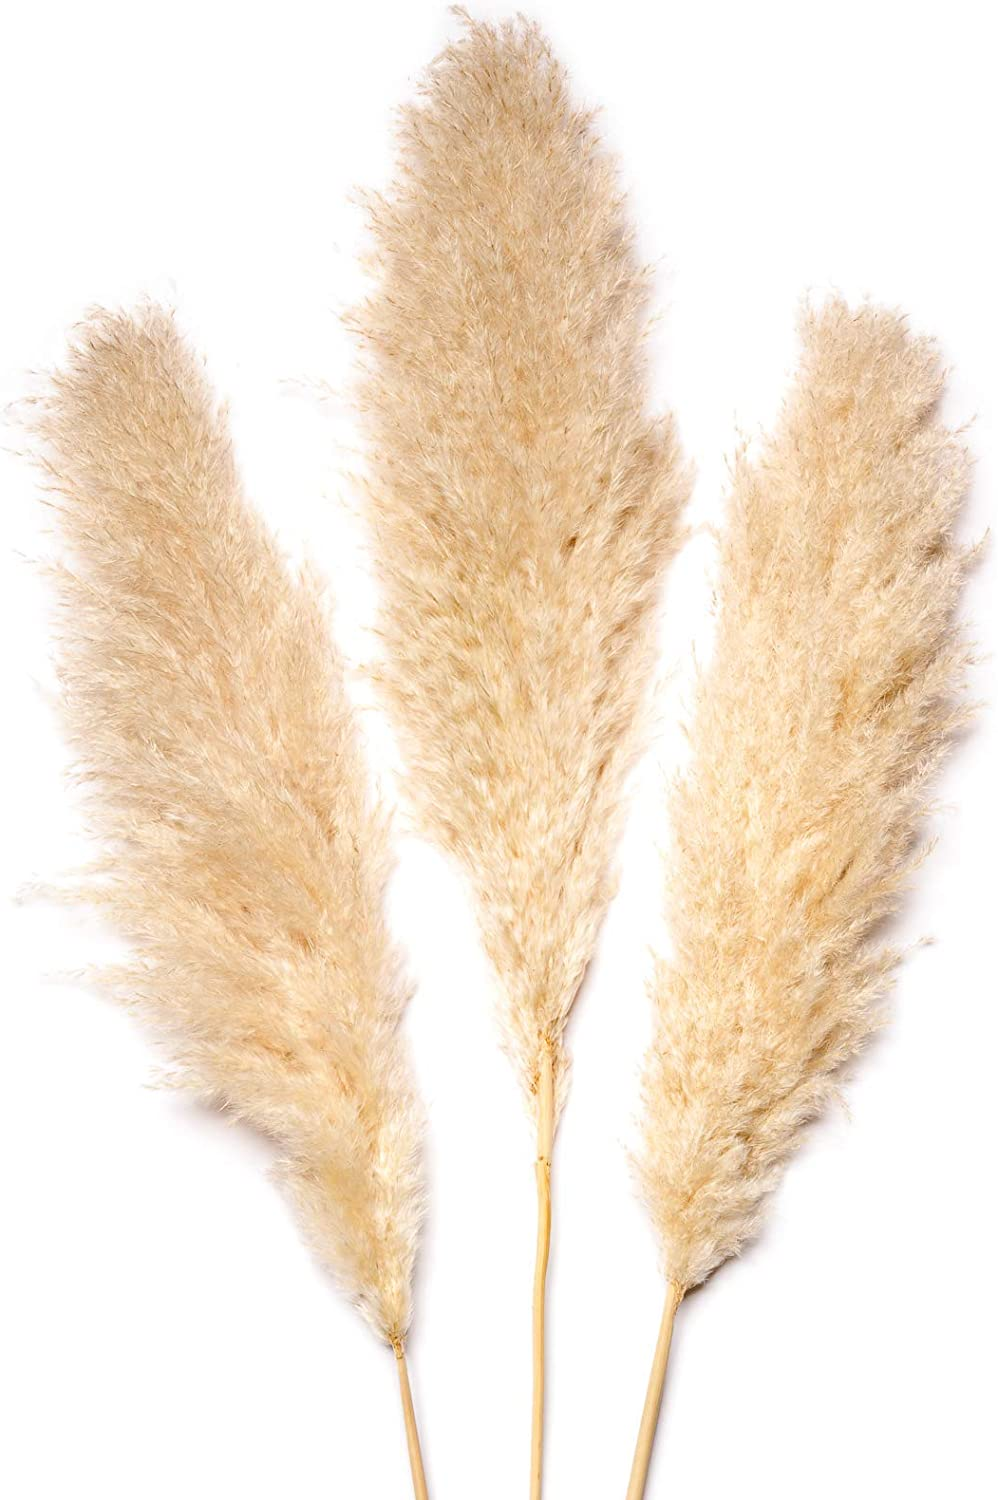 Buy All Grace Pampas Grass   21 Large Natural Dried Pampas Grass ...